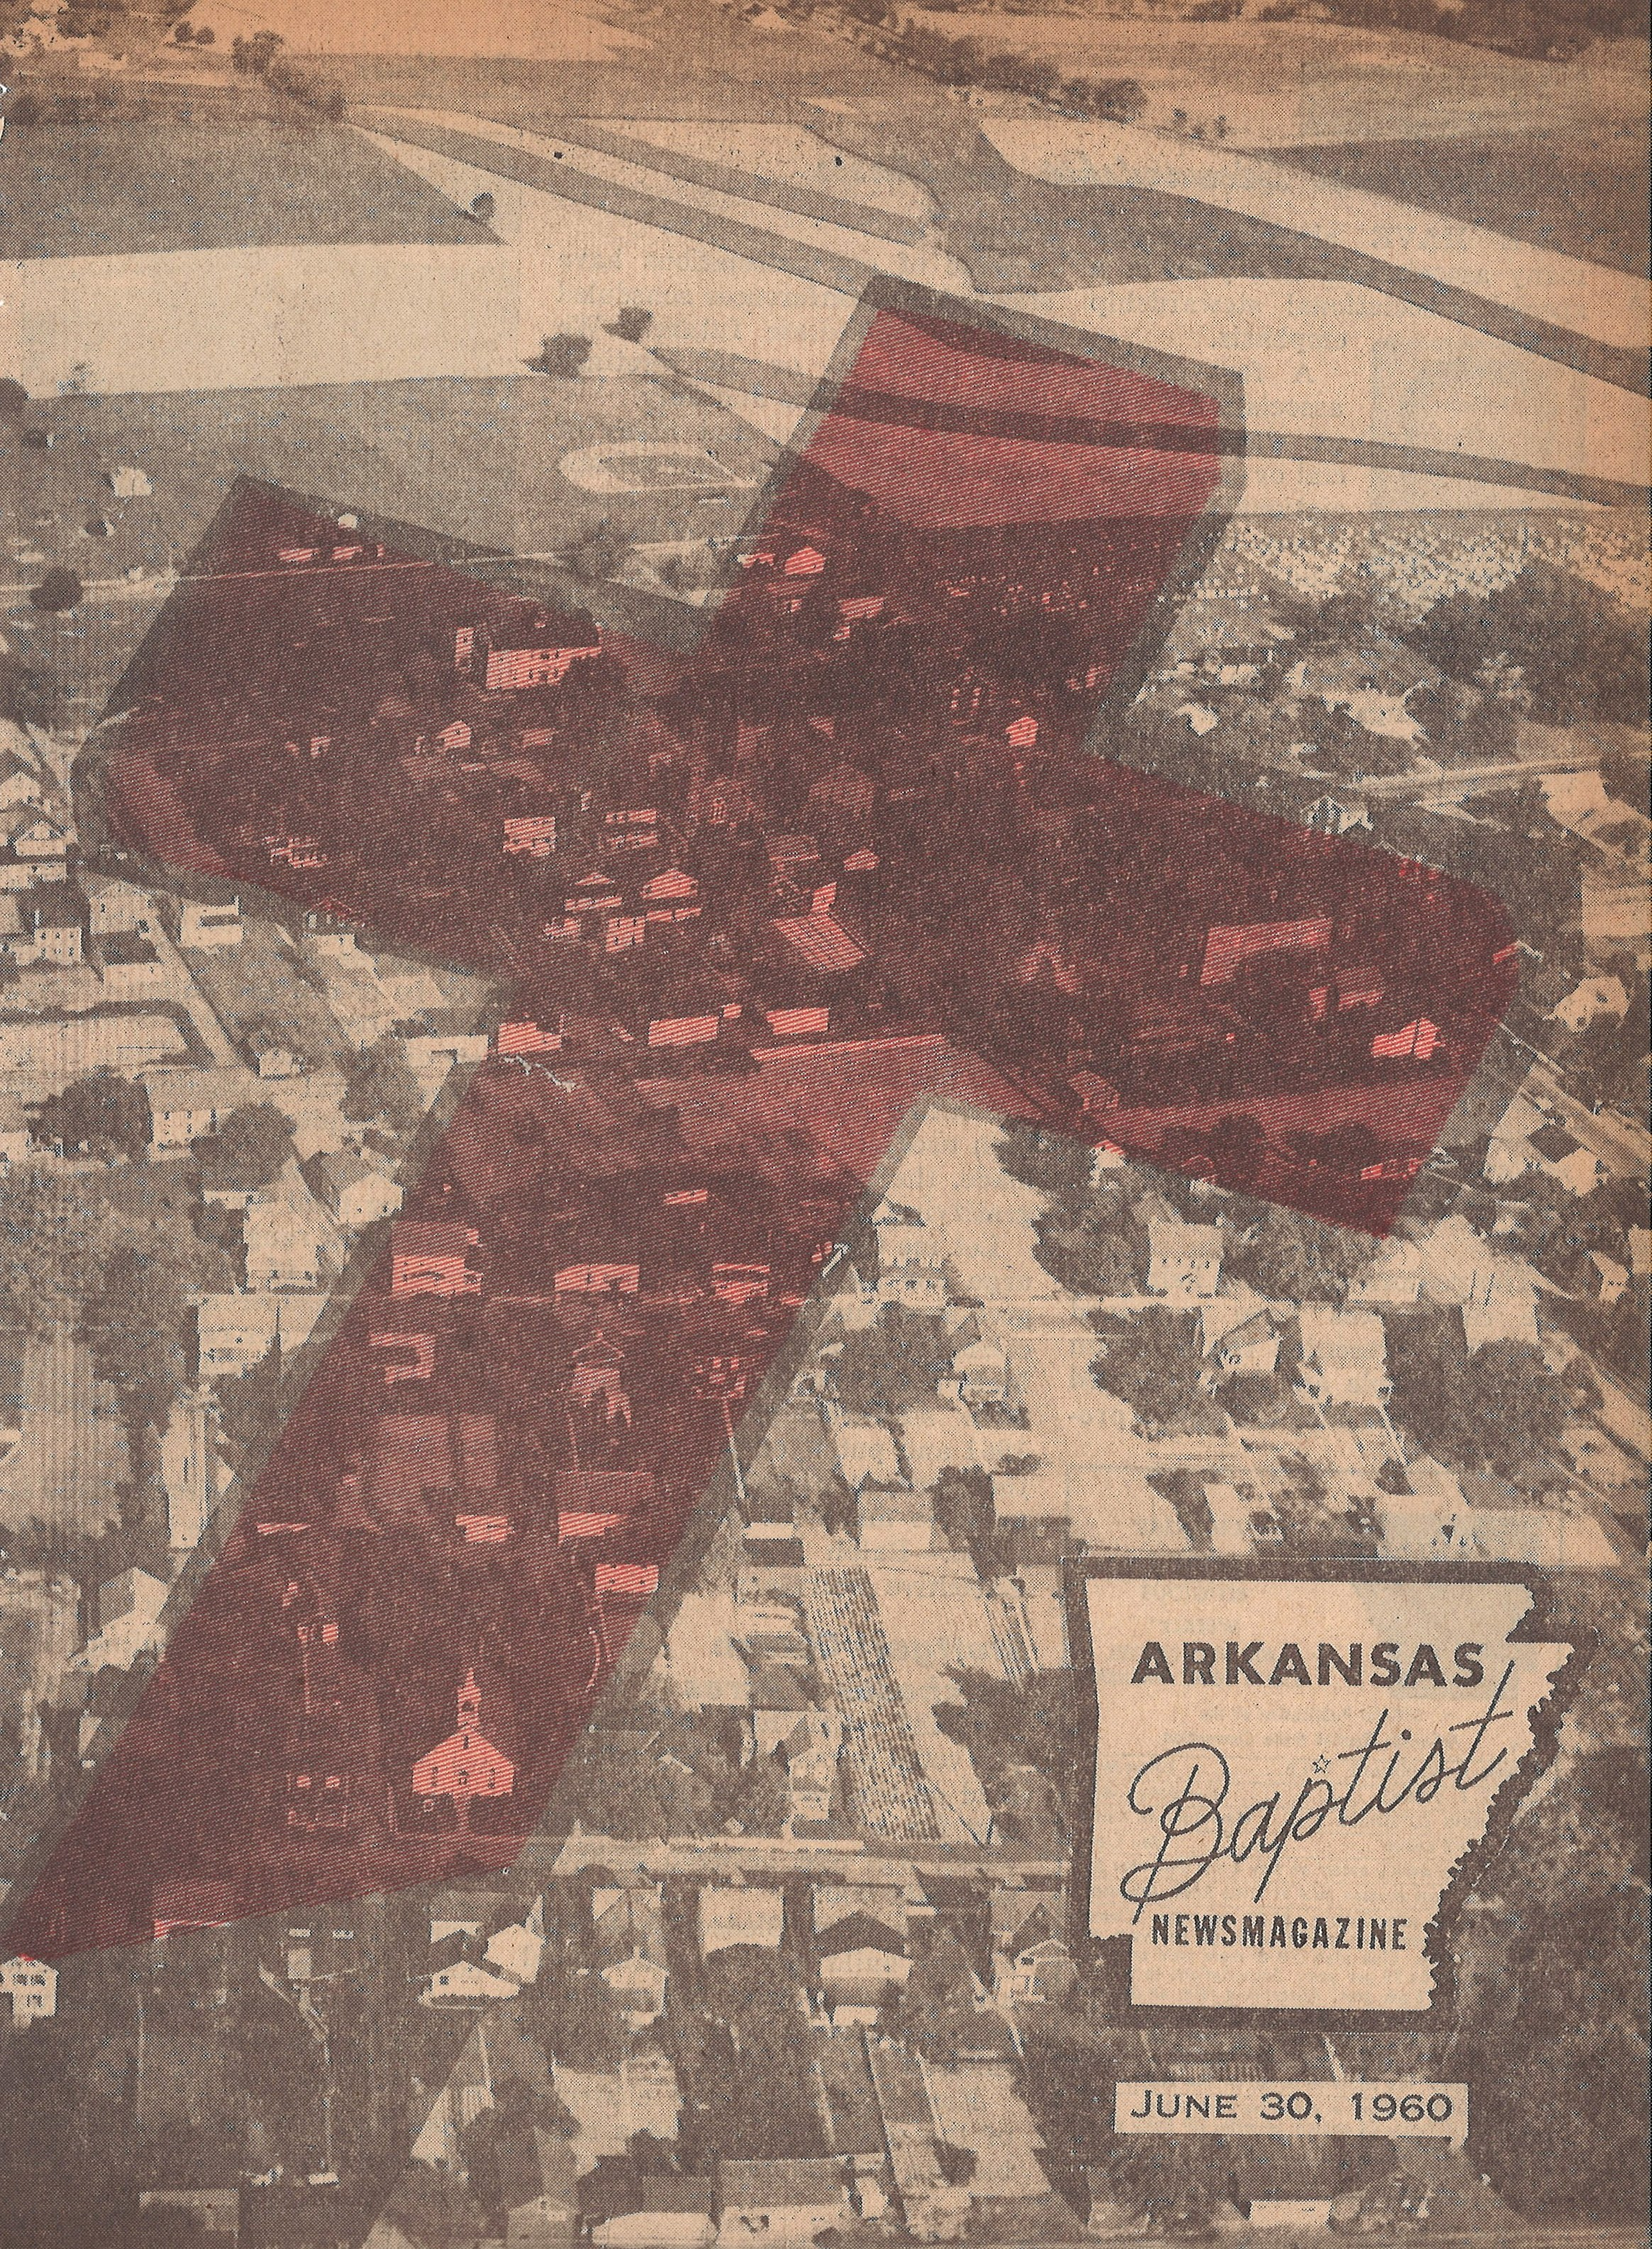 Arkansas Baptist News